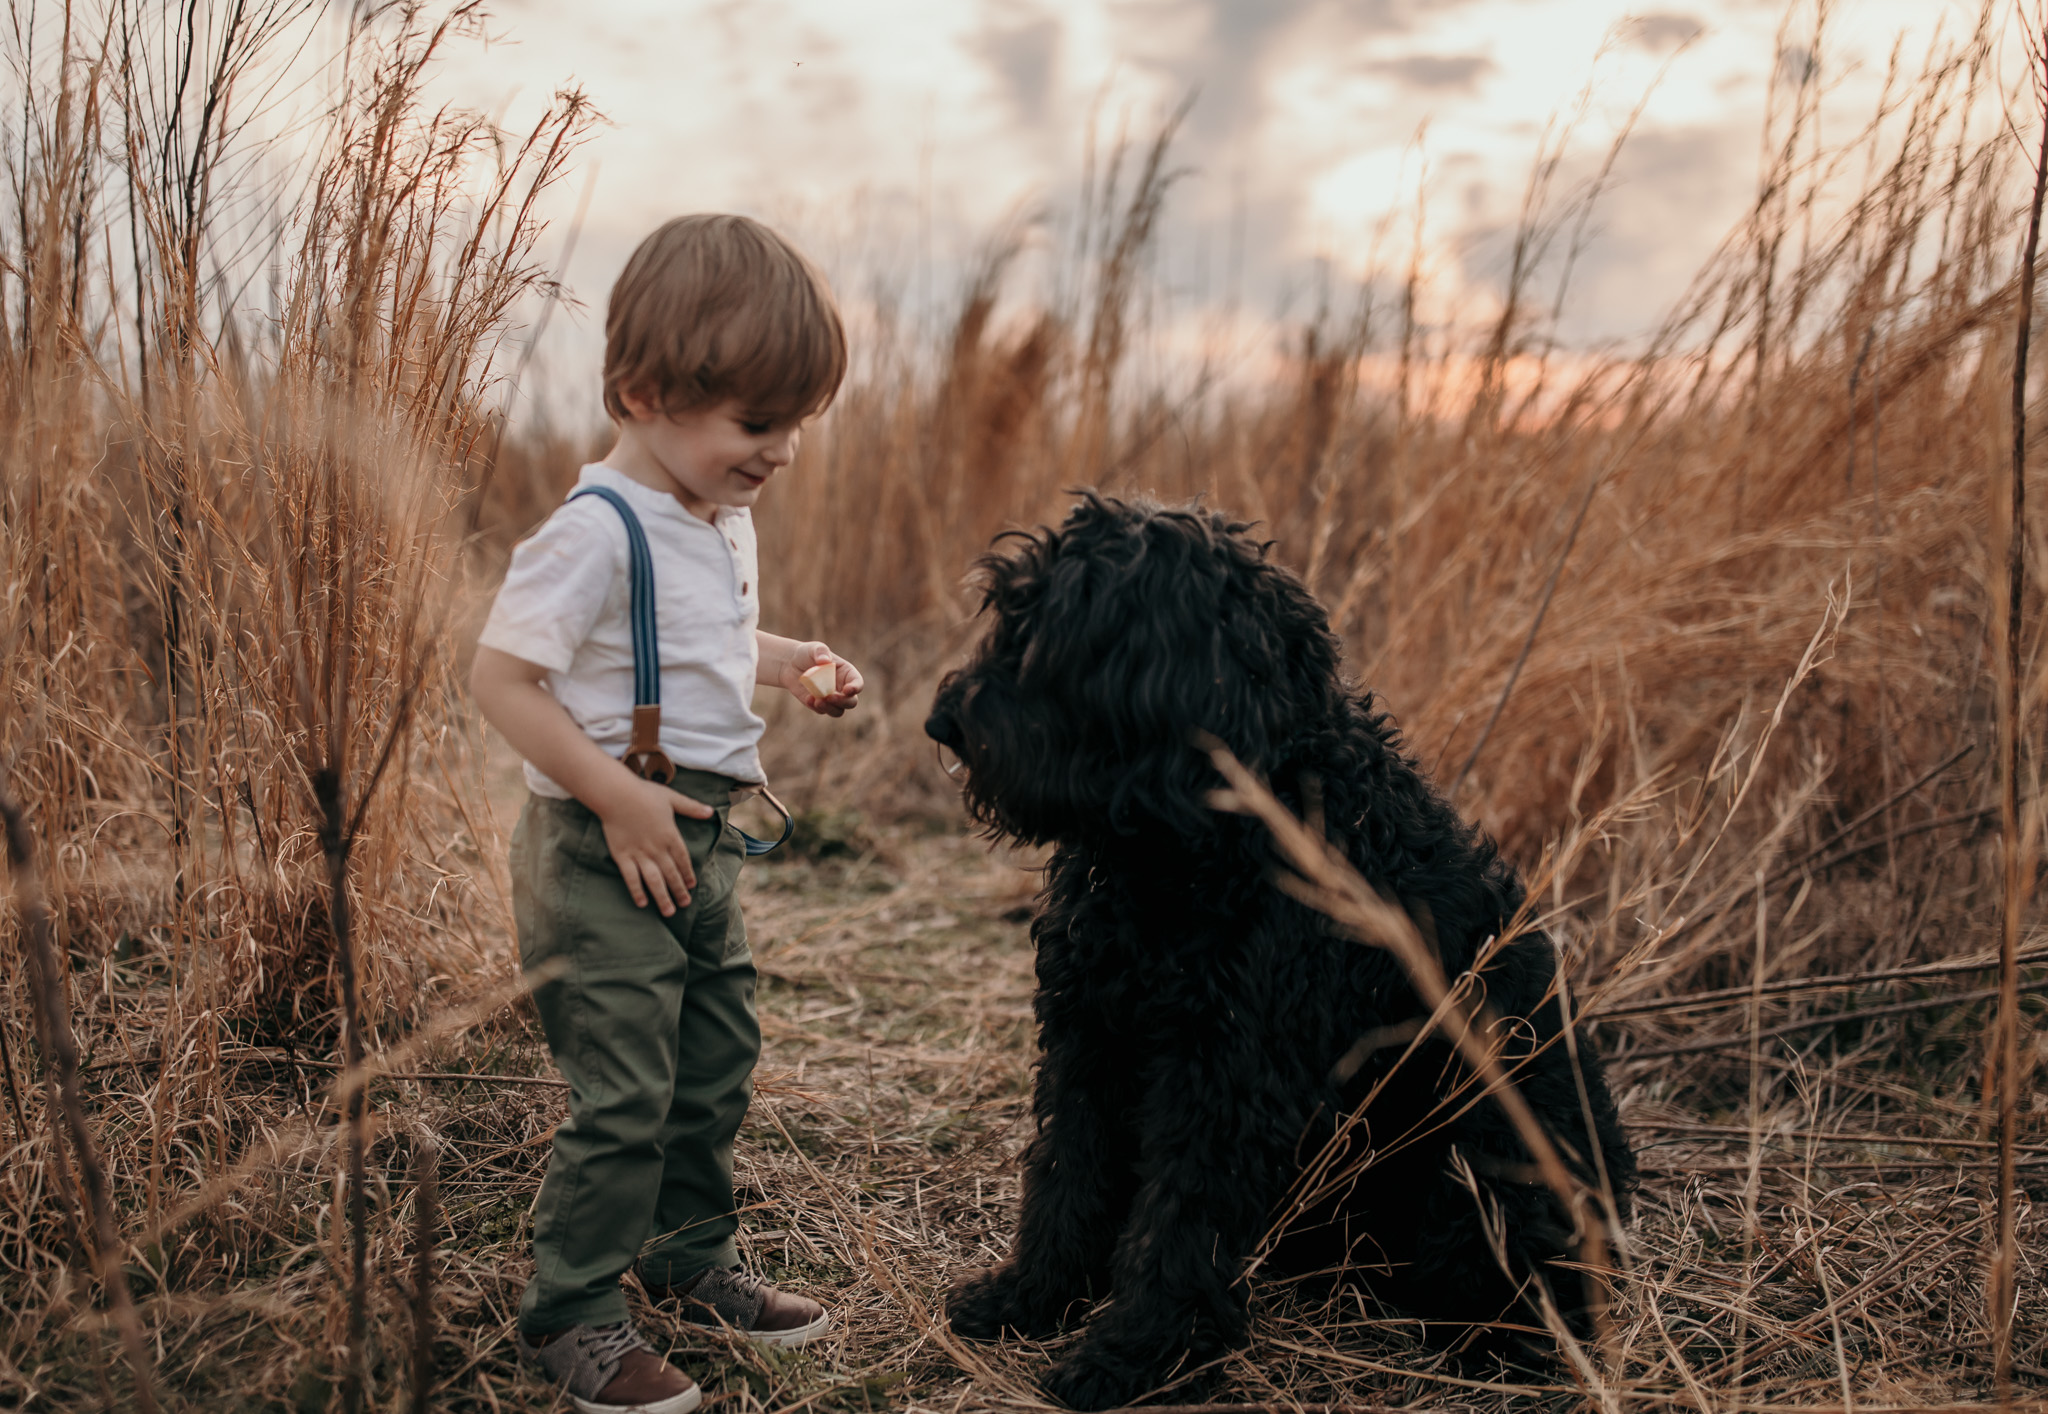 A Young Boy and his Dog